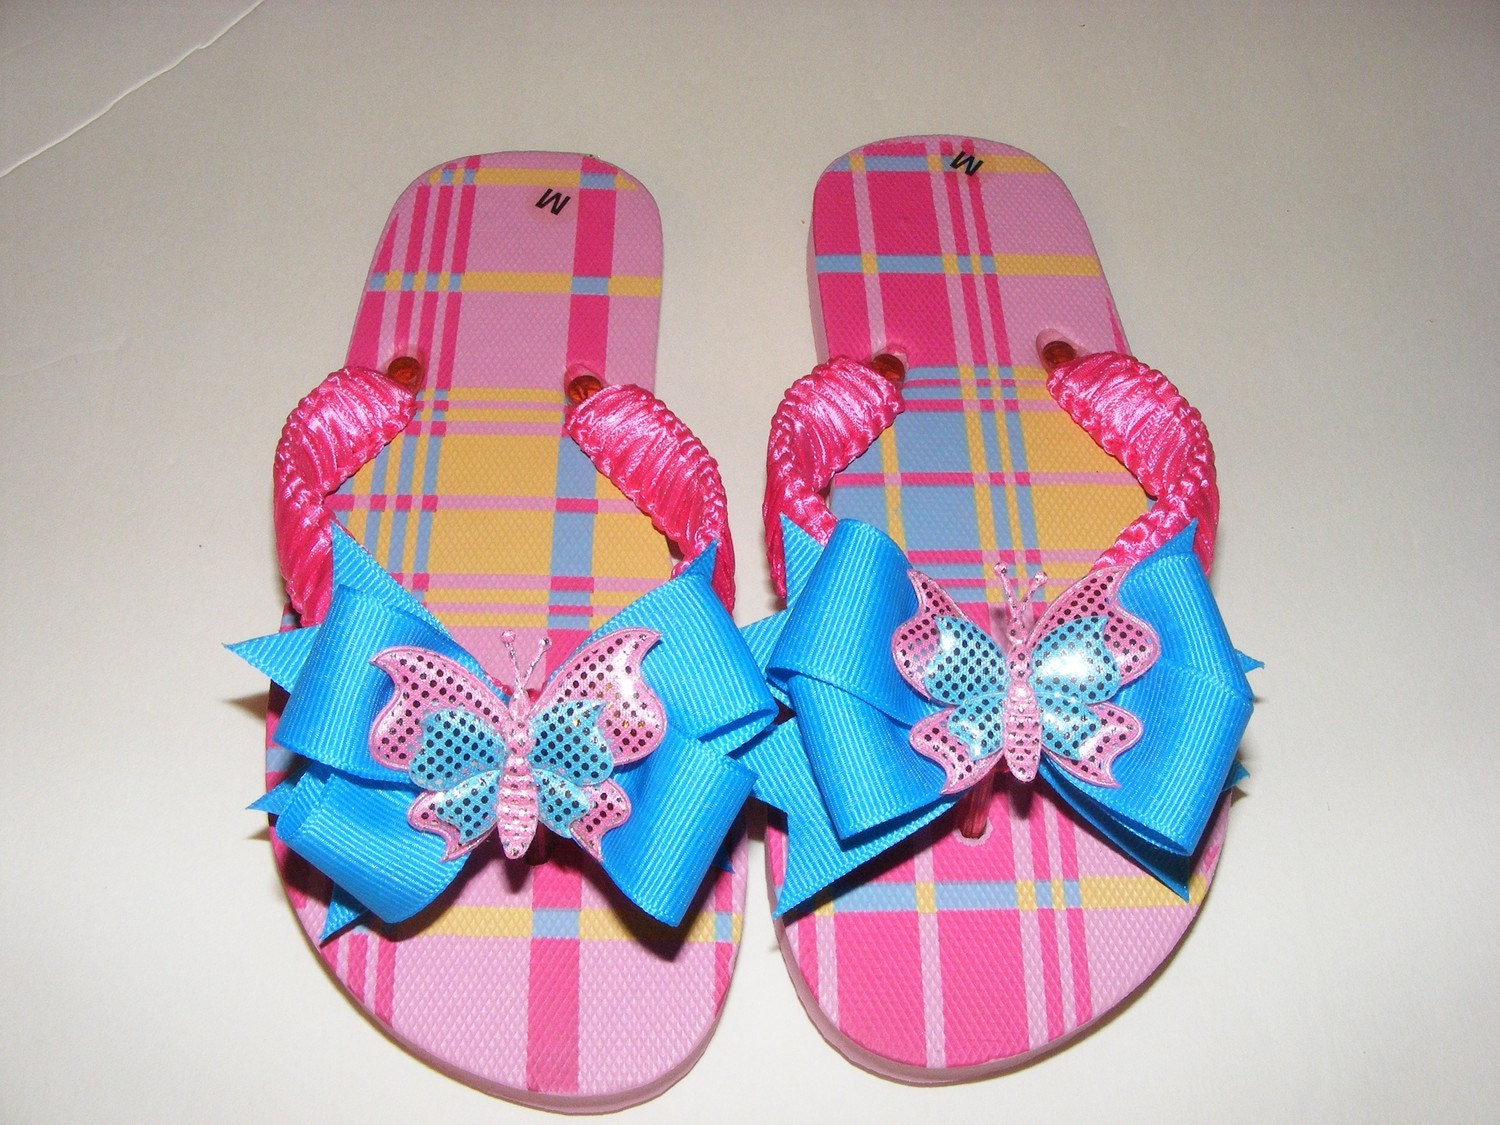 New Pink and Multicolor Plaids Flip Flops - Medium Girl Size 11/12